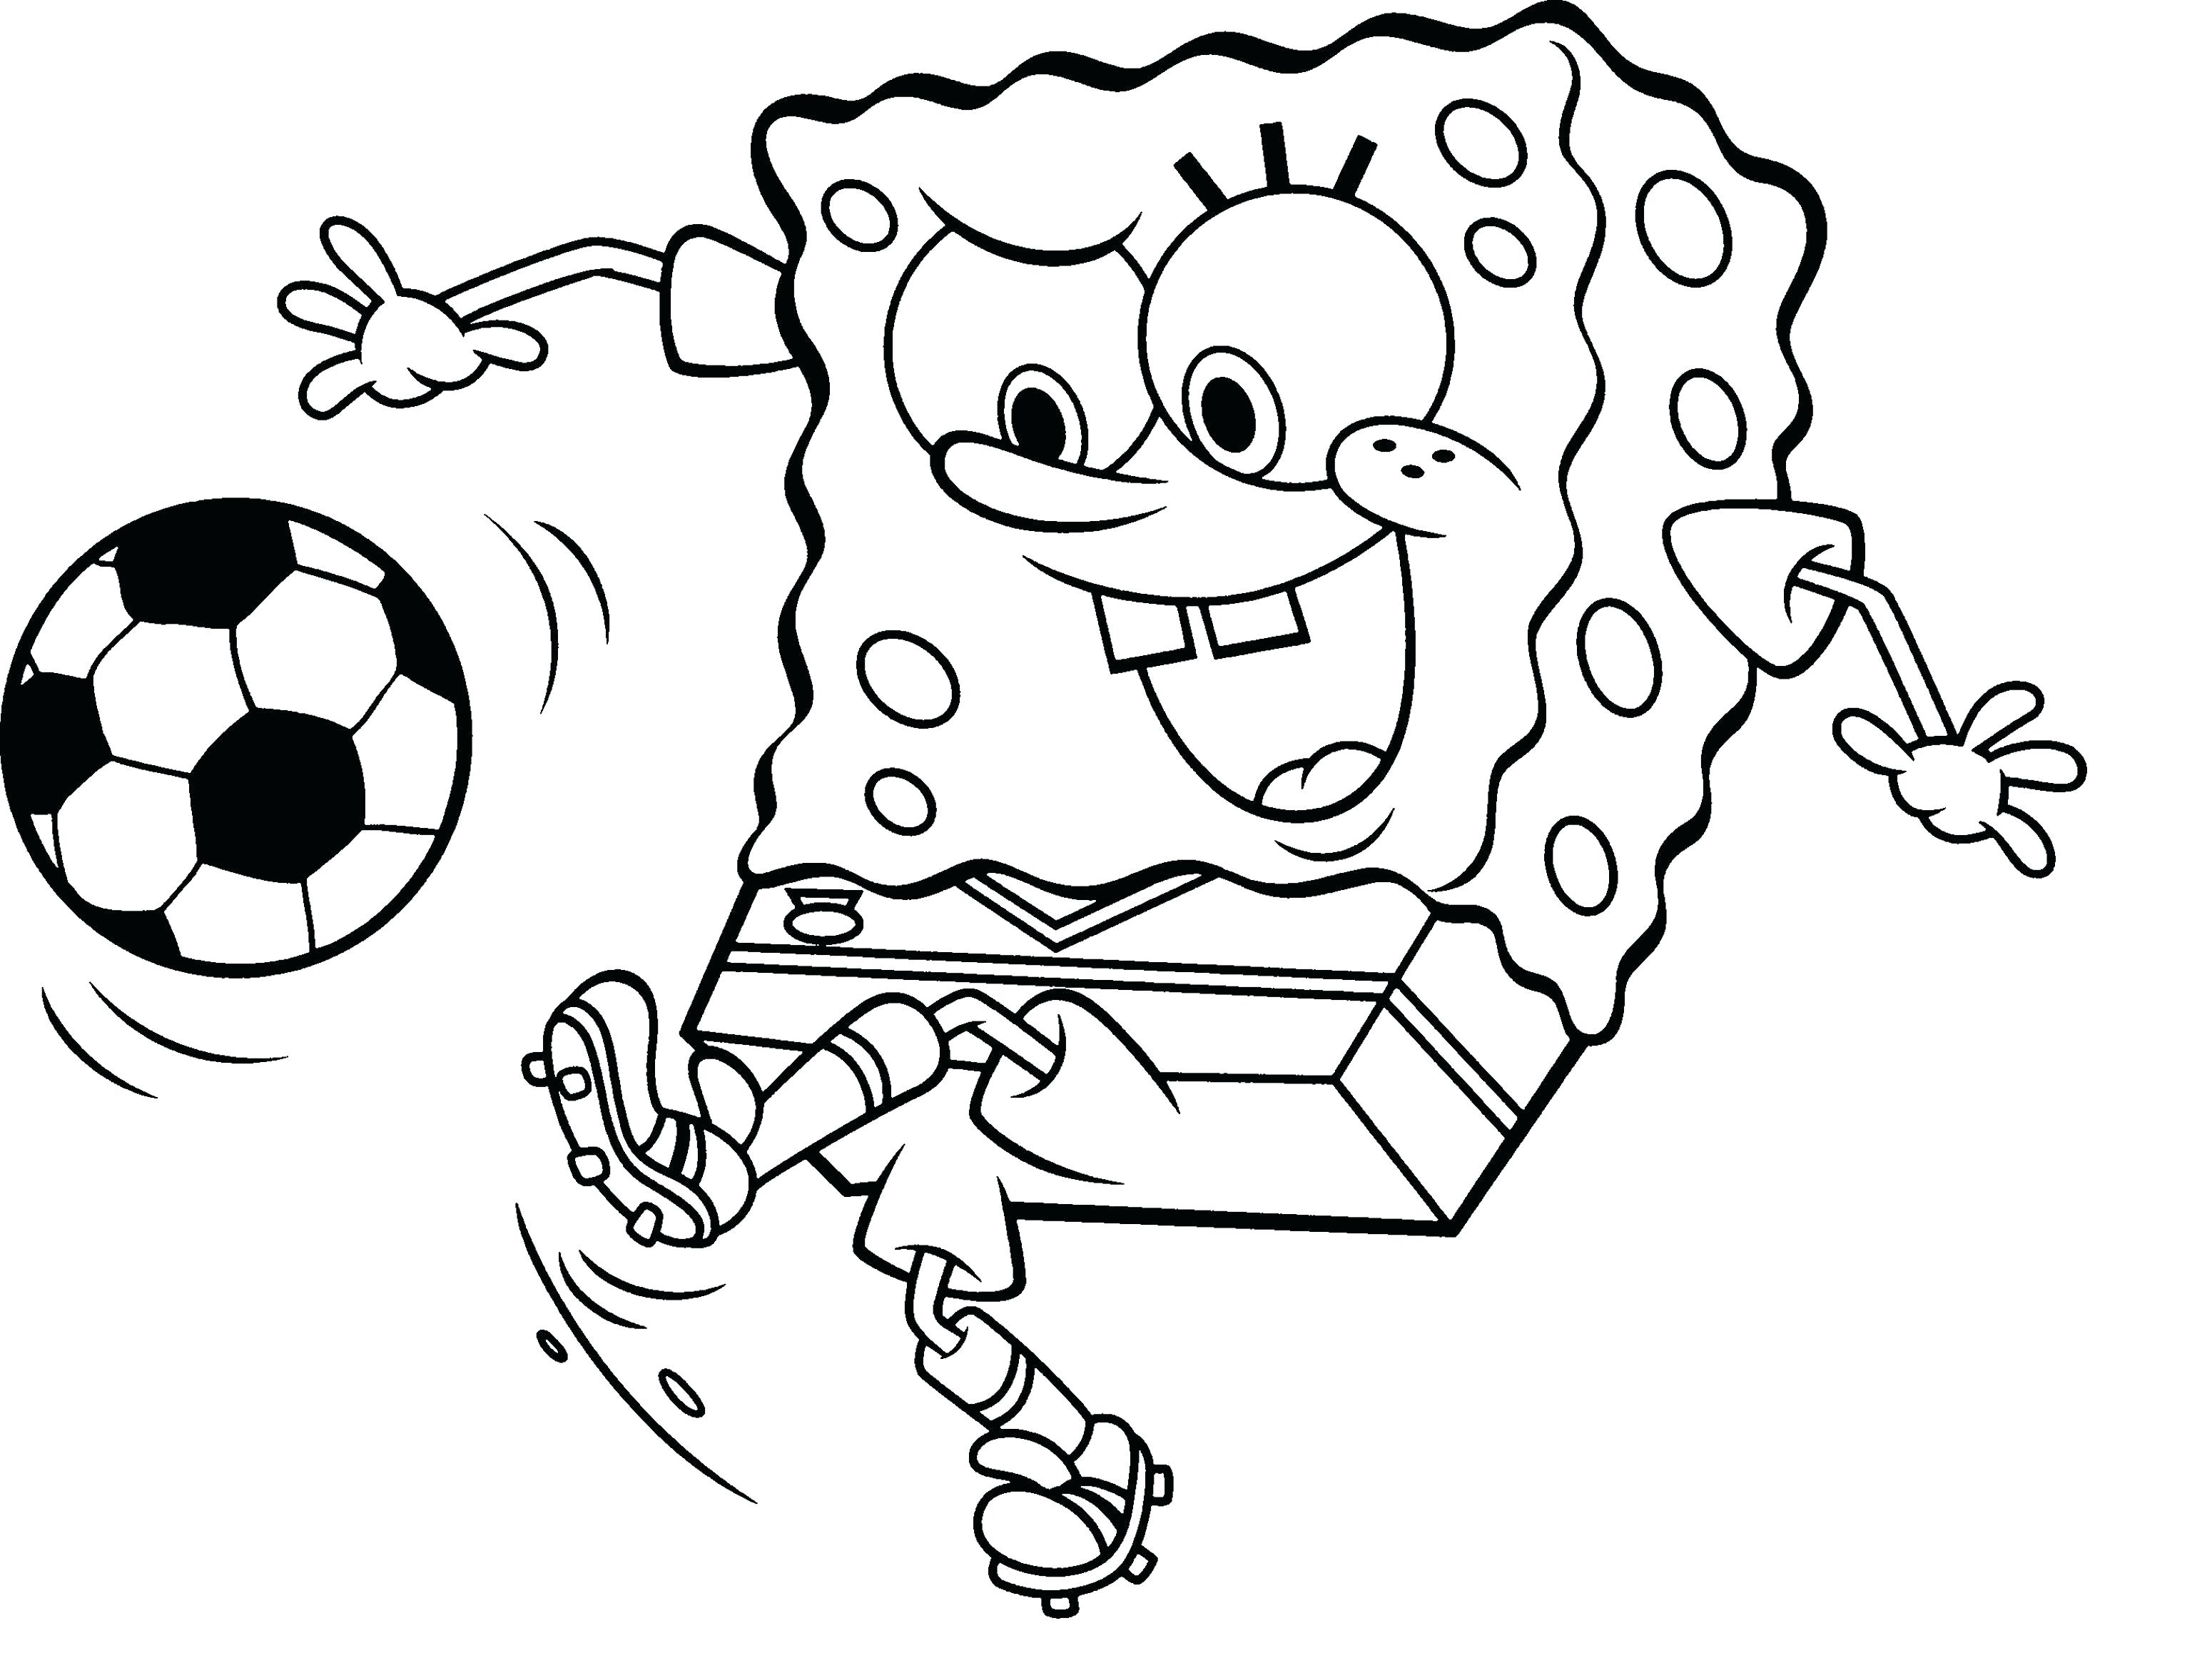 3100x2344 Coloring Nfl Football Helmets Coloring Pages Free